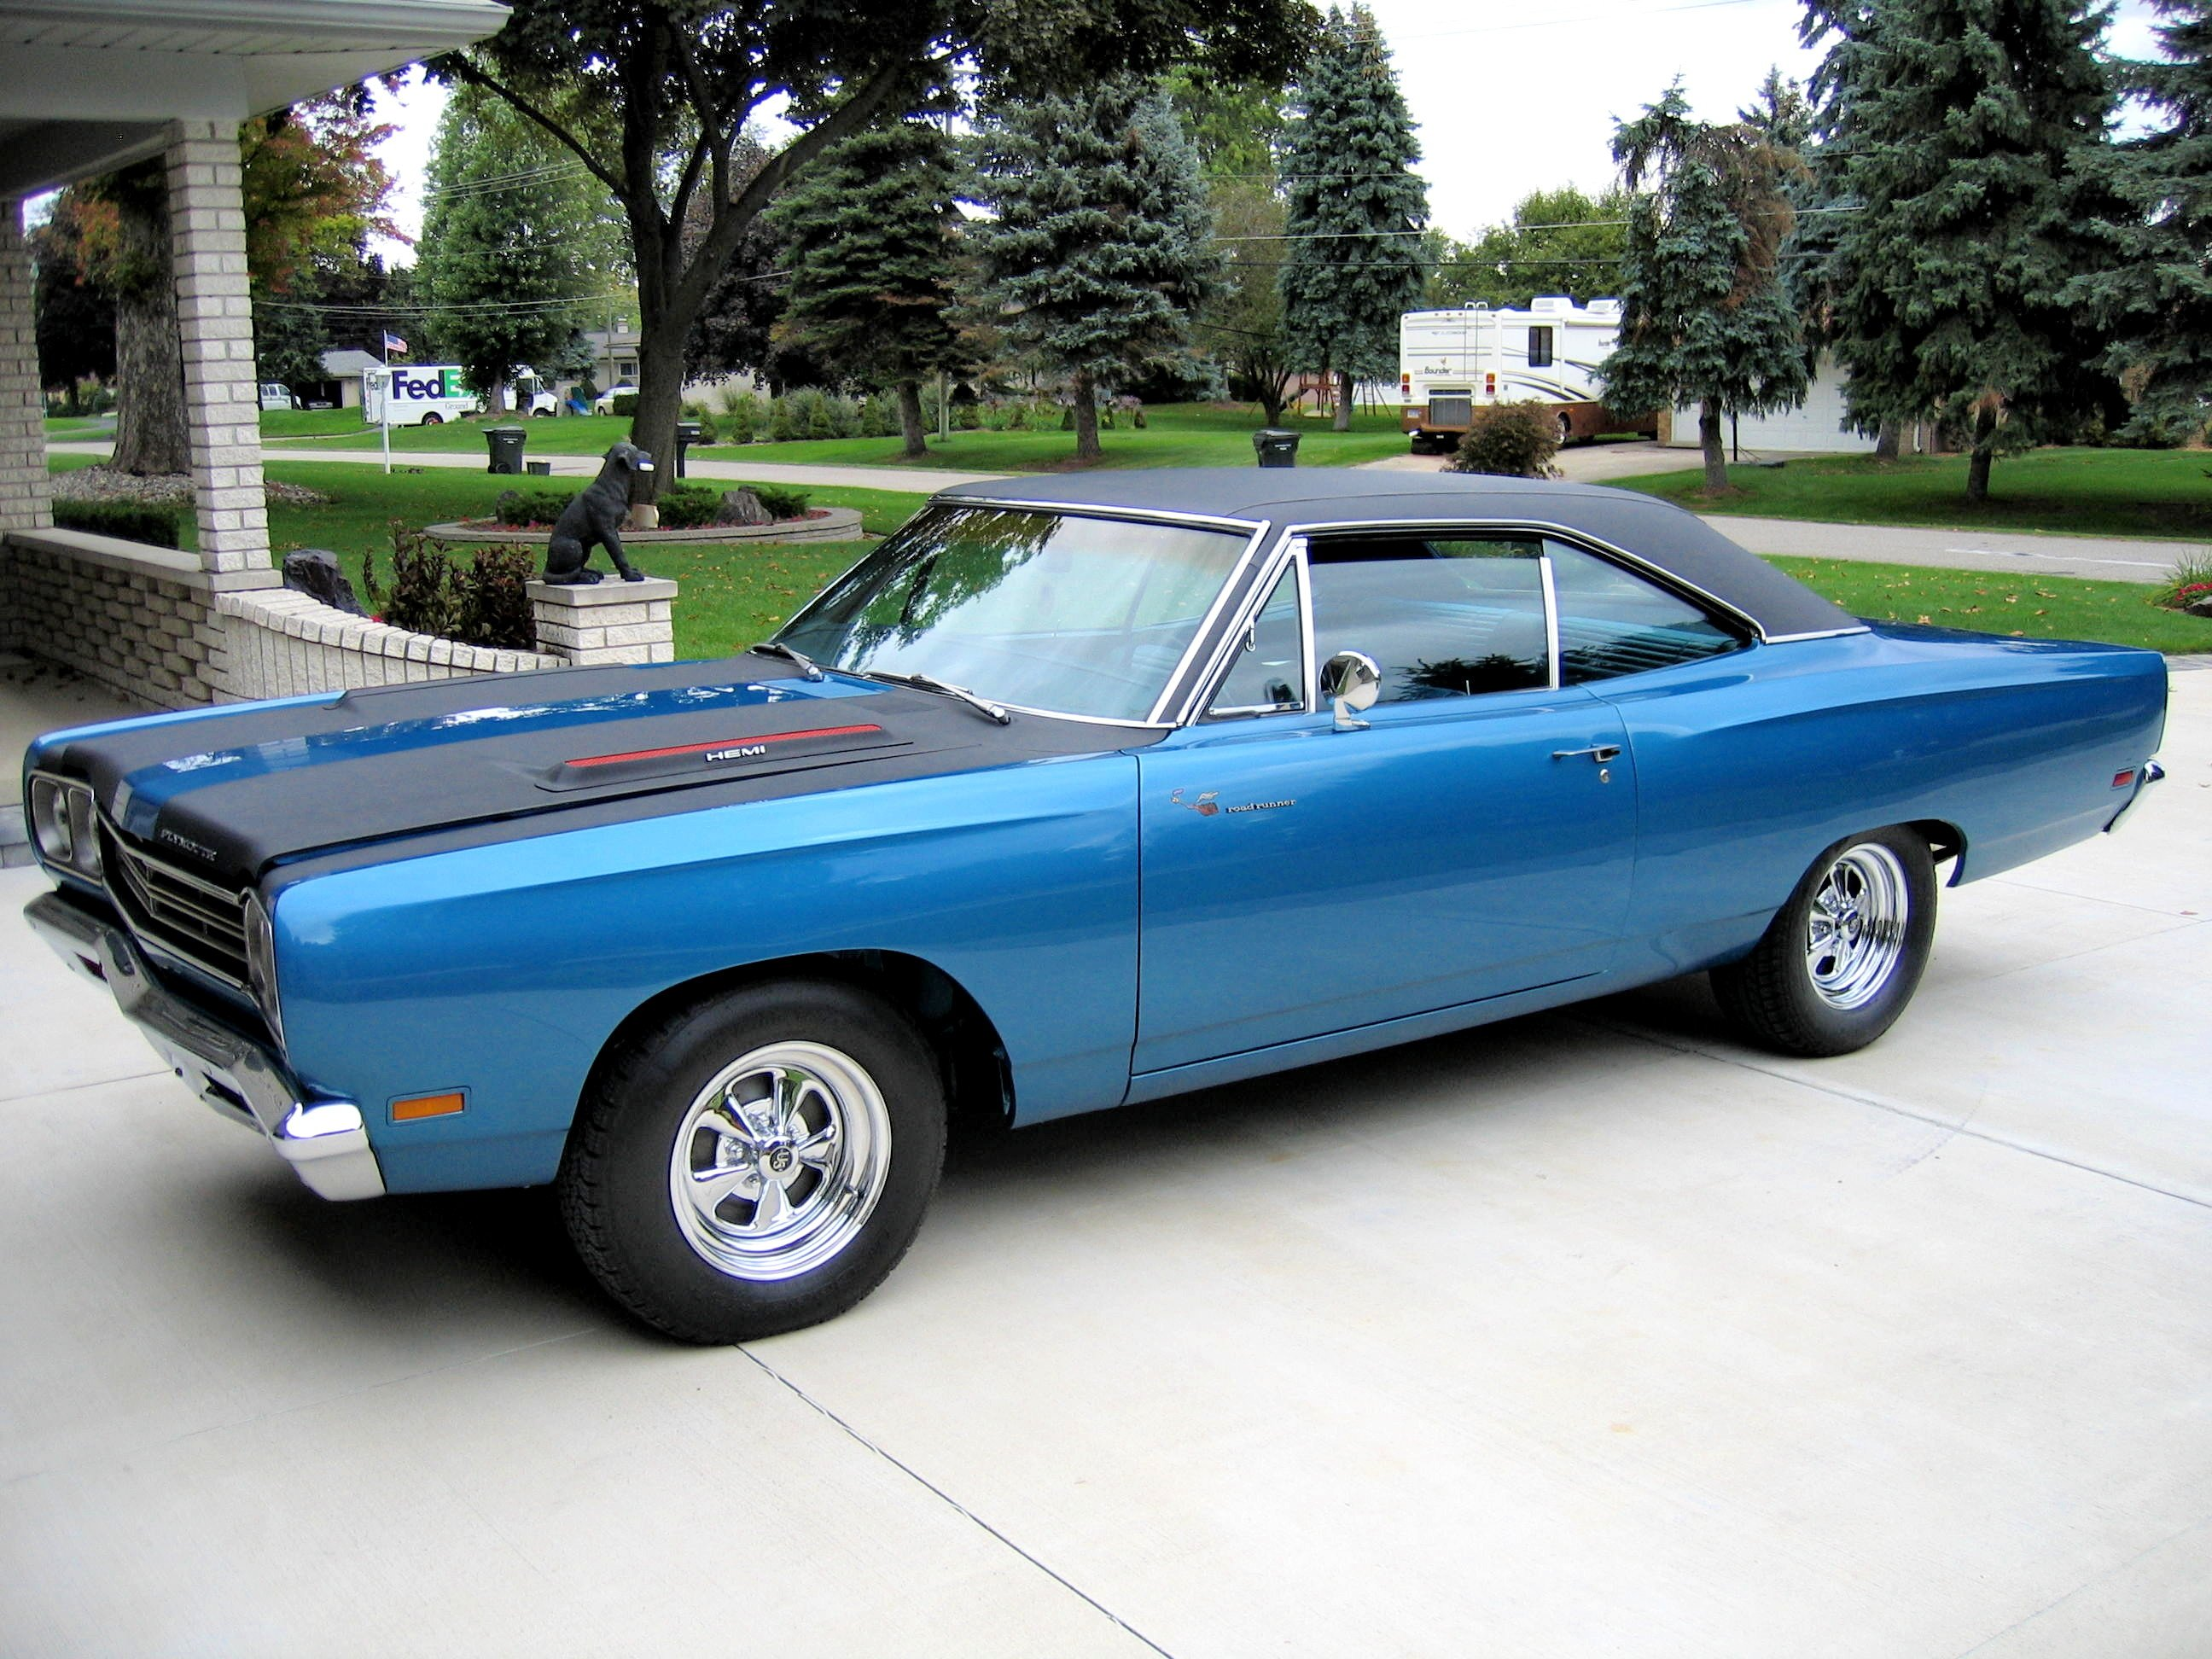 1970 Plymouth Roadrunner Wiring Diagram 70 Road Runner Get Free Image About Interior Diagrams Explore Schematic U2022 Vacum